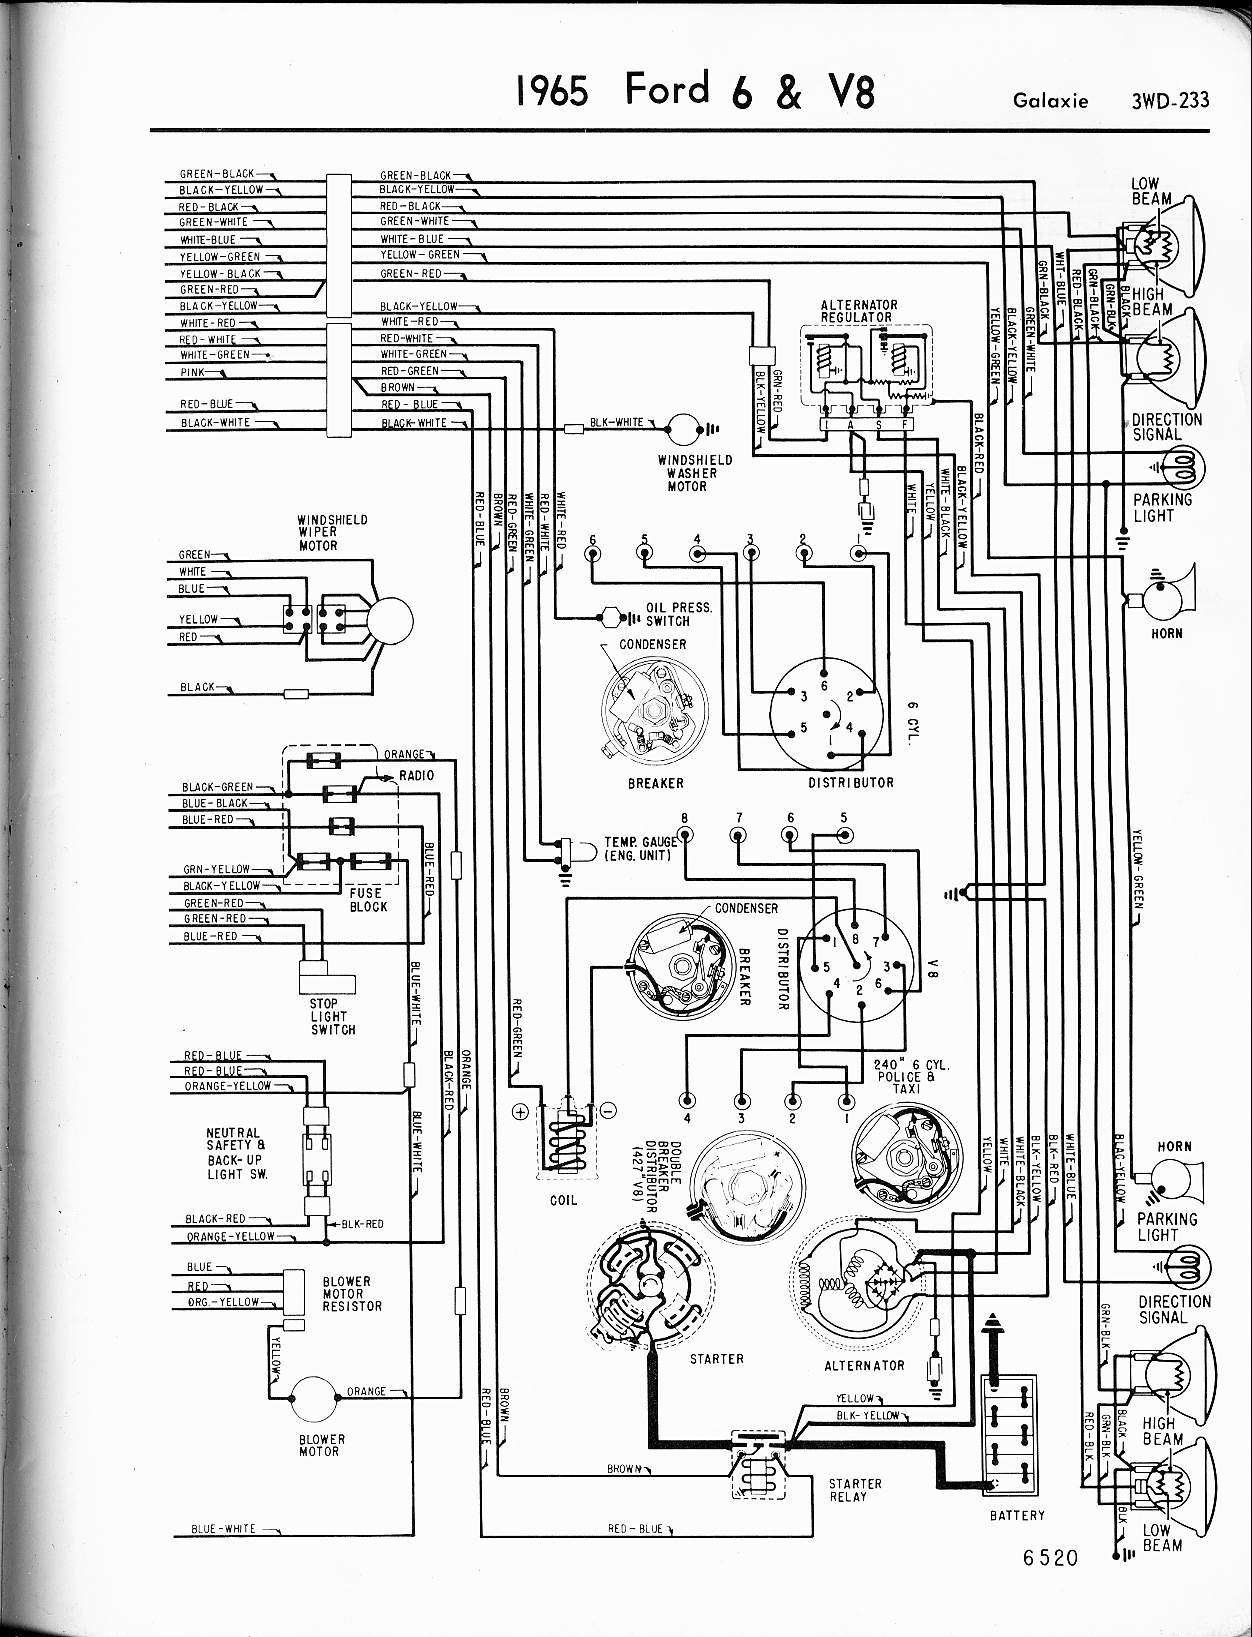 MWire5765 233 57 65 ford wiring diagrams 1965 ford f100 wiring harness at bayanpartner.co